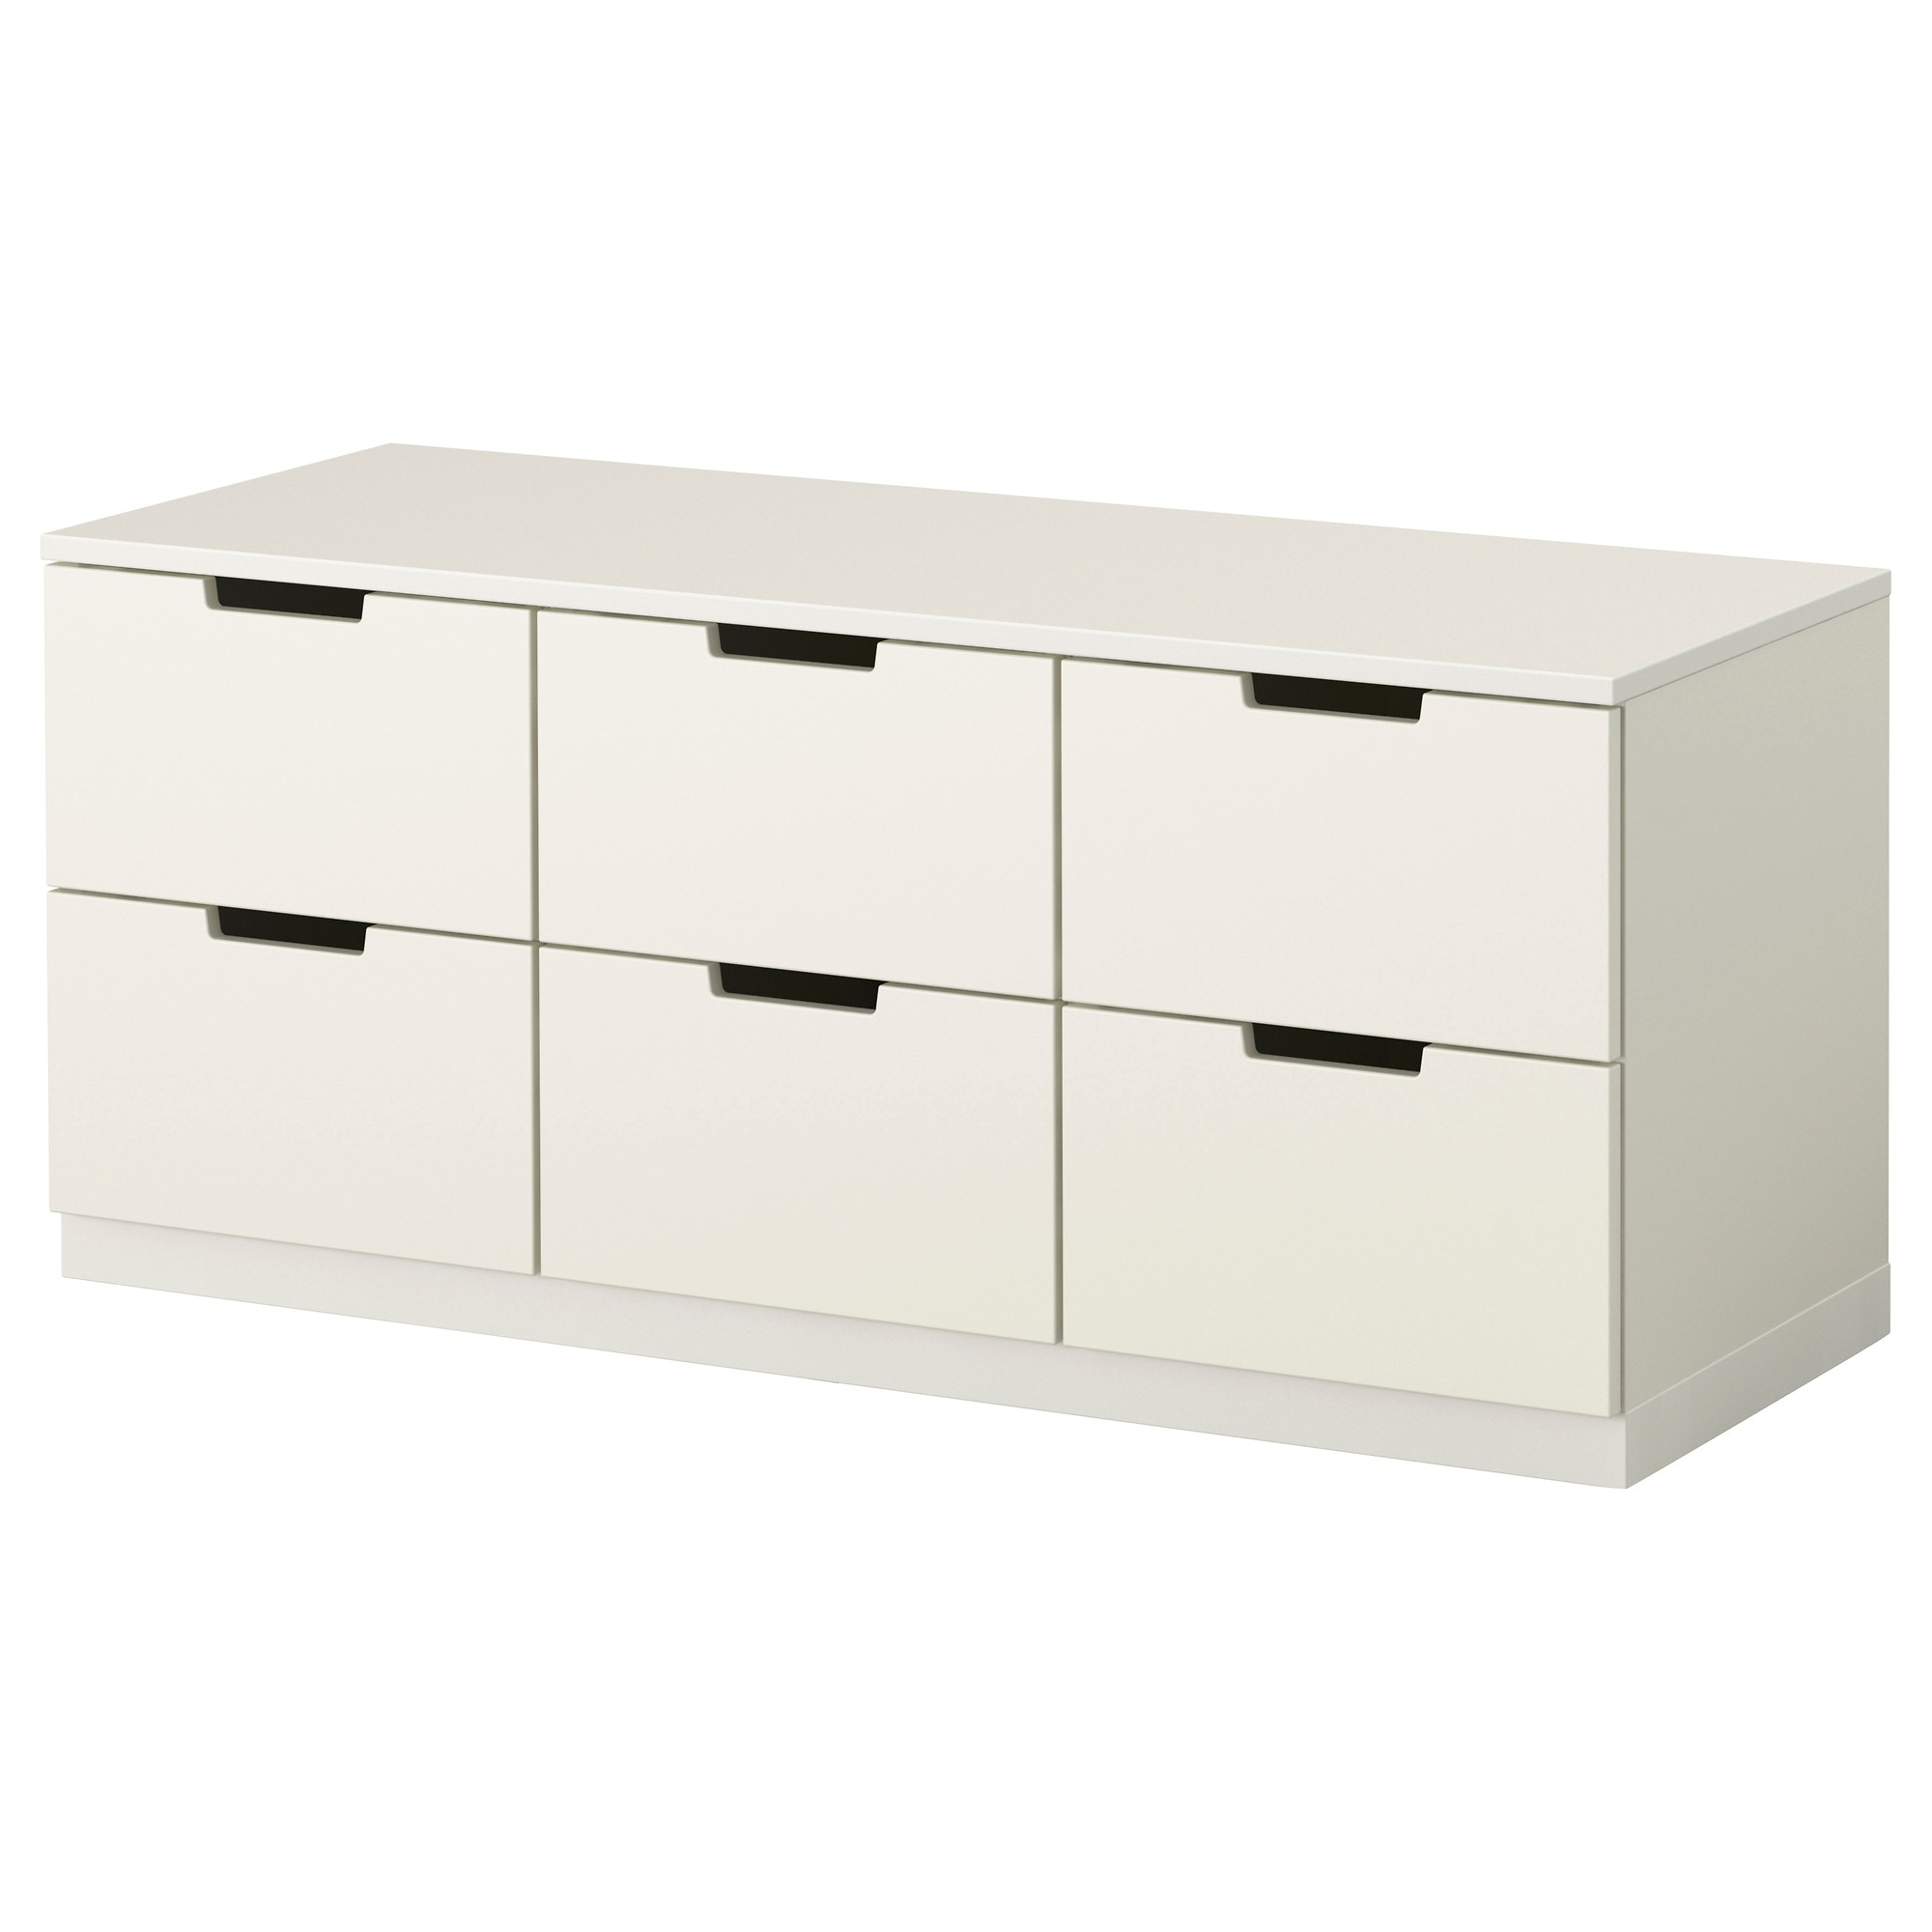 NORDLI Chest of 6 drawers - IKEA